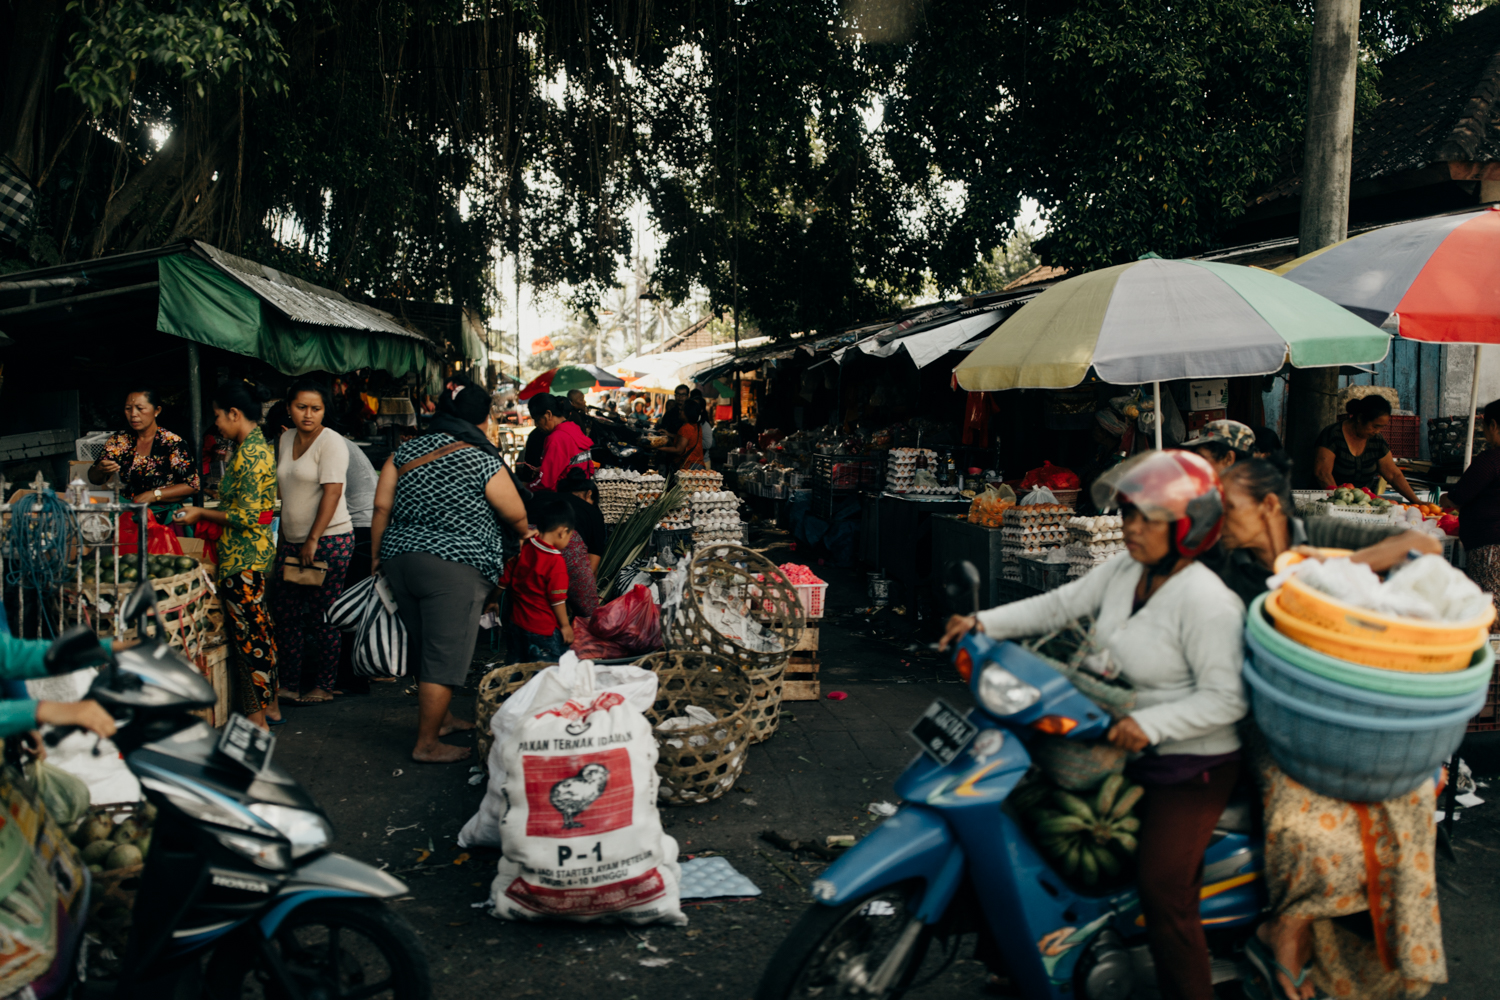 People at market in Bali, Indonesia